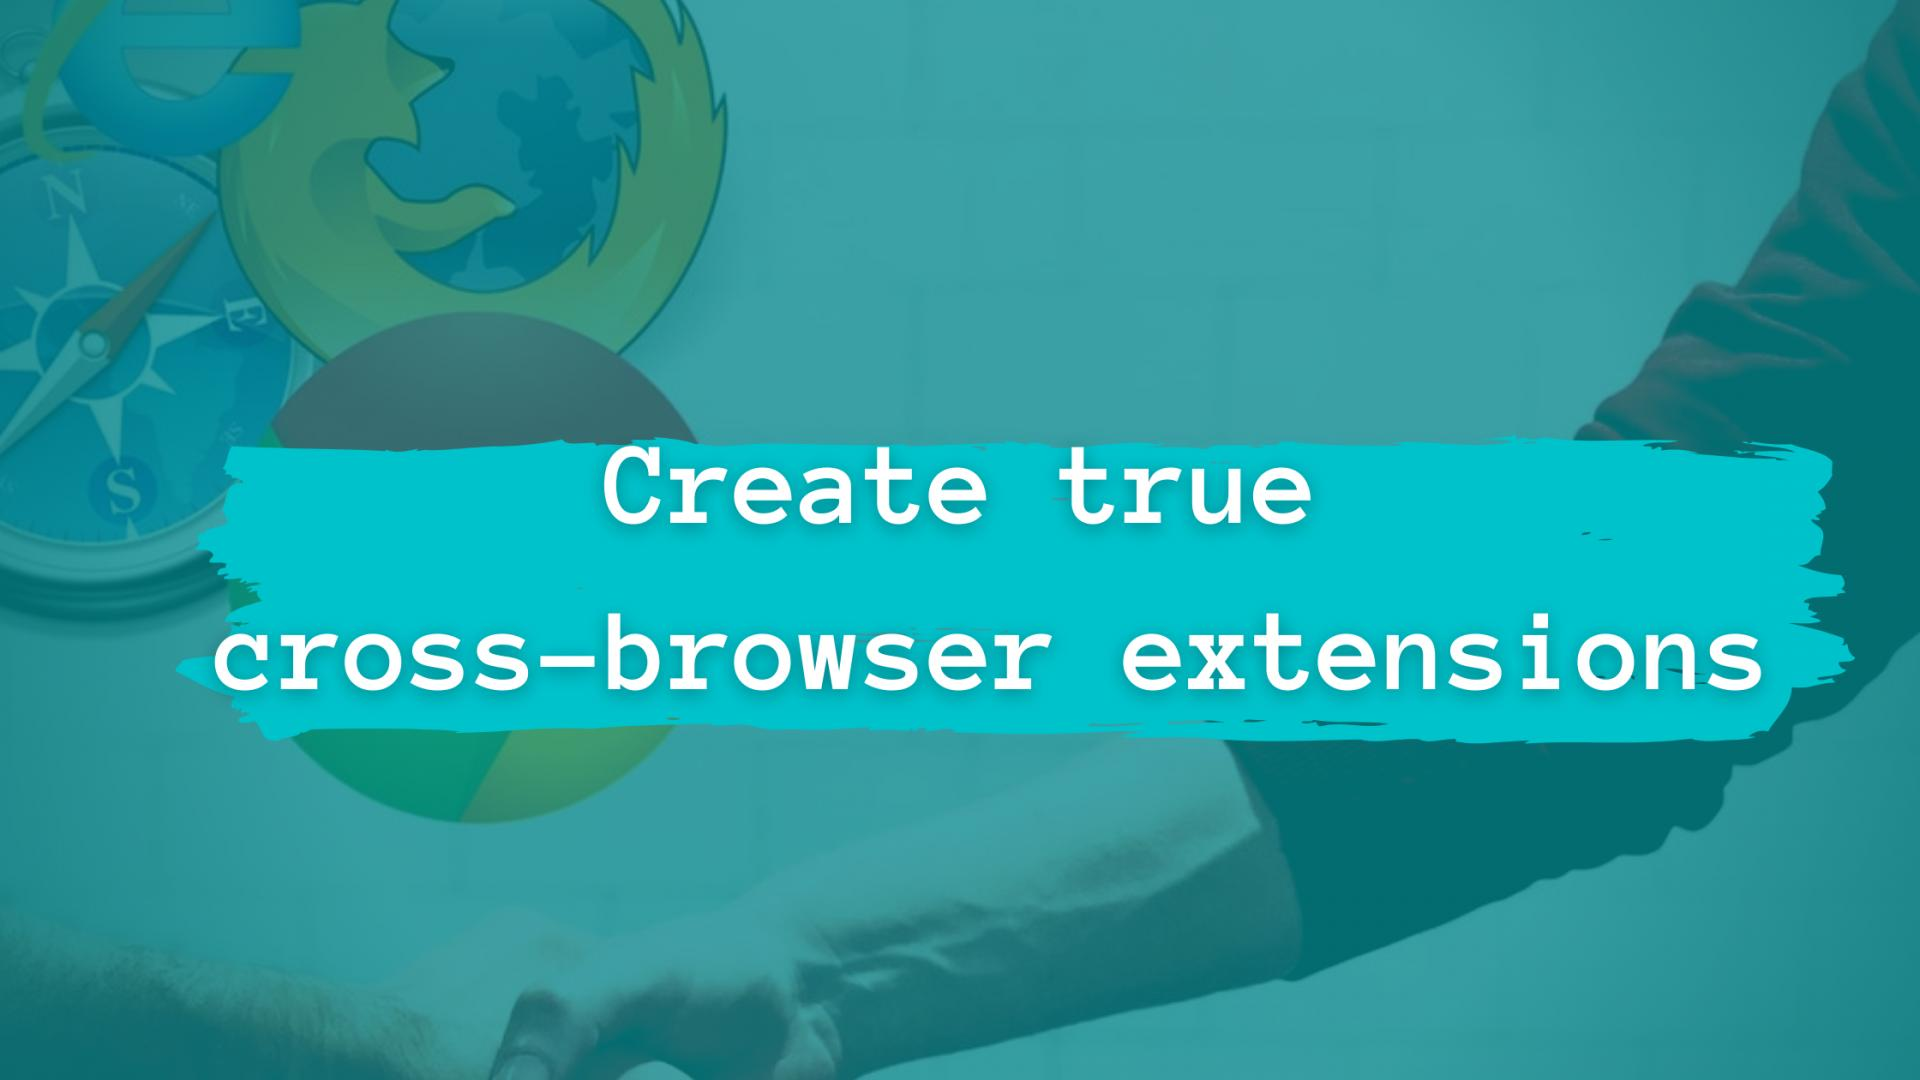 How to create true cross-browser extensions?